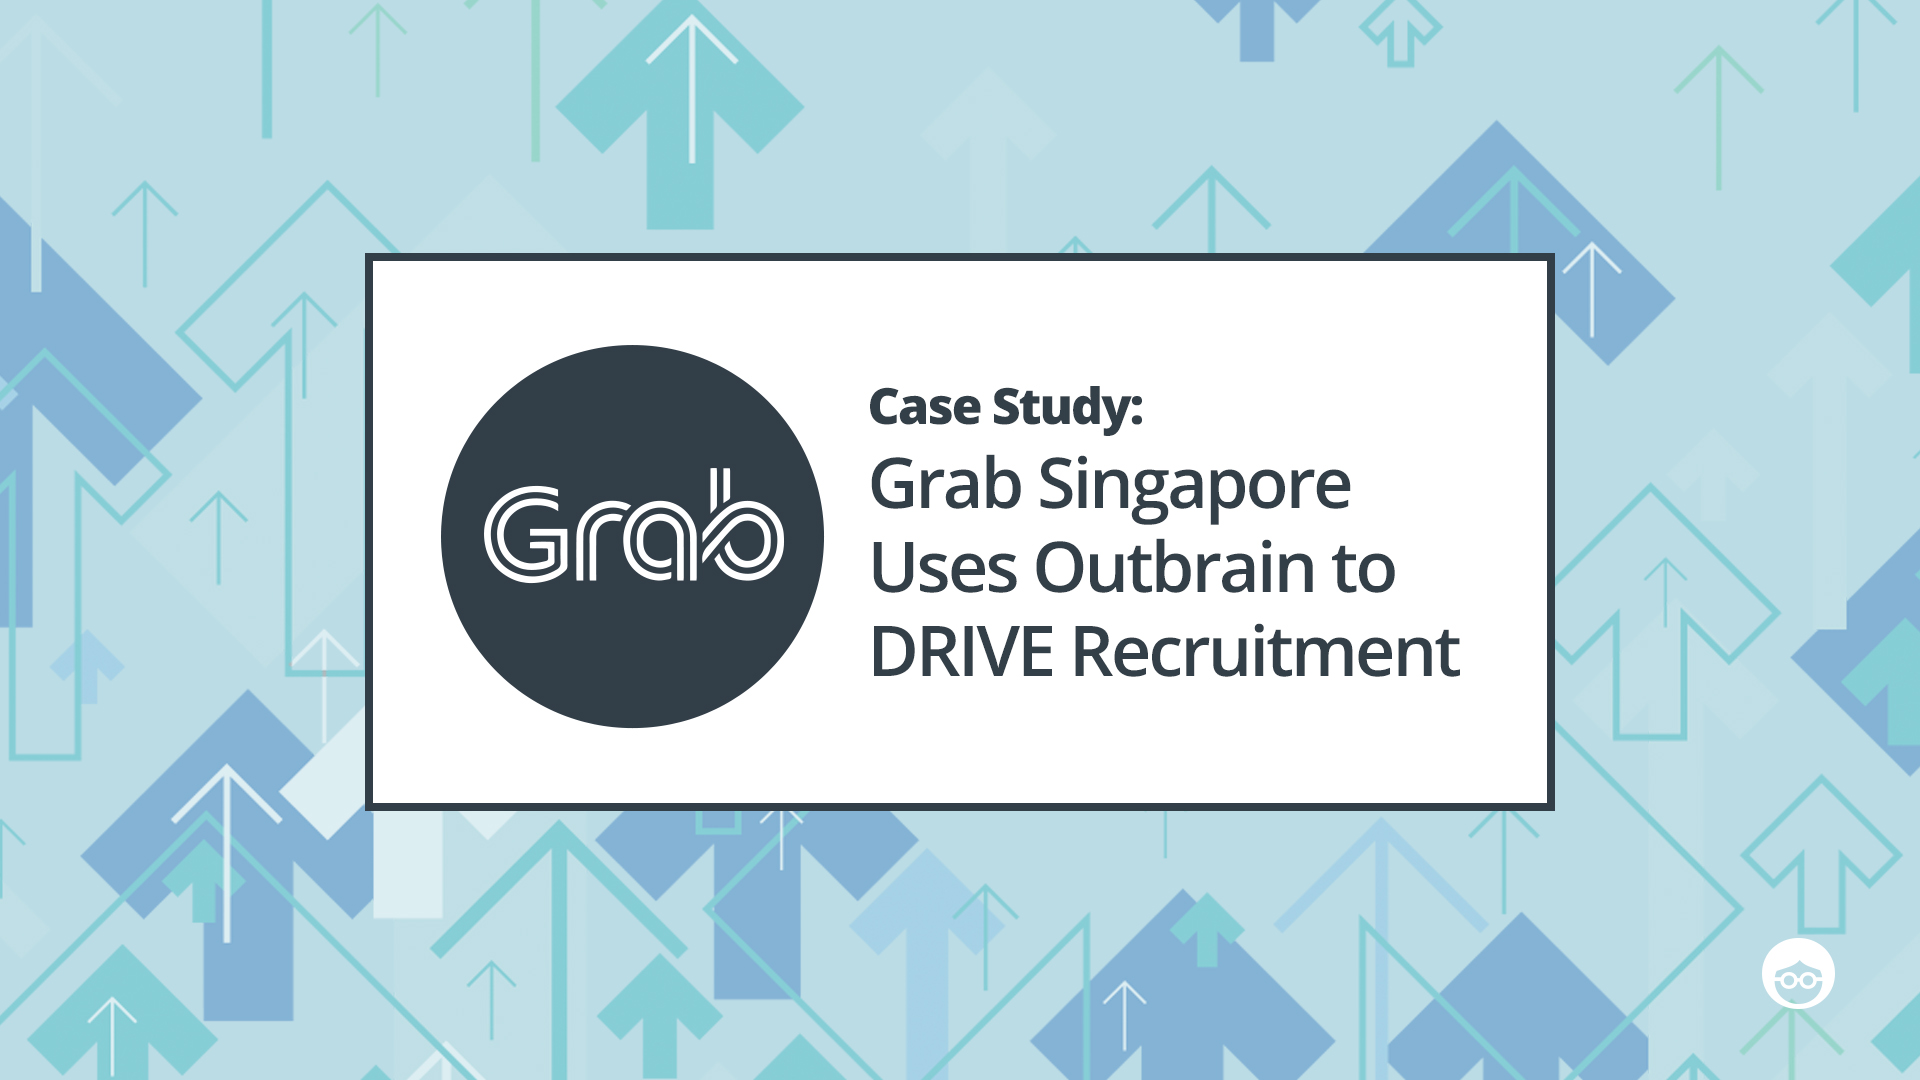 Grab Singapore Uses Outbrain to DRIVE Recruitment